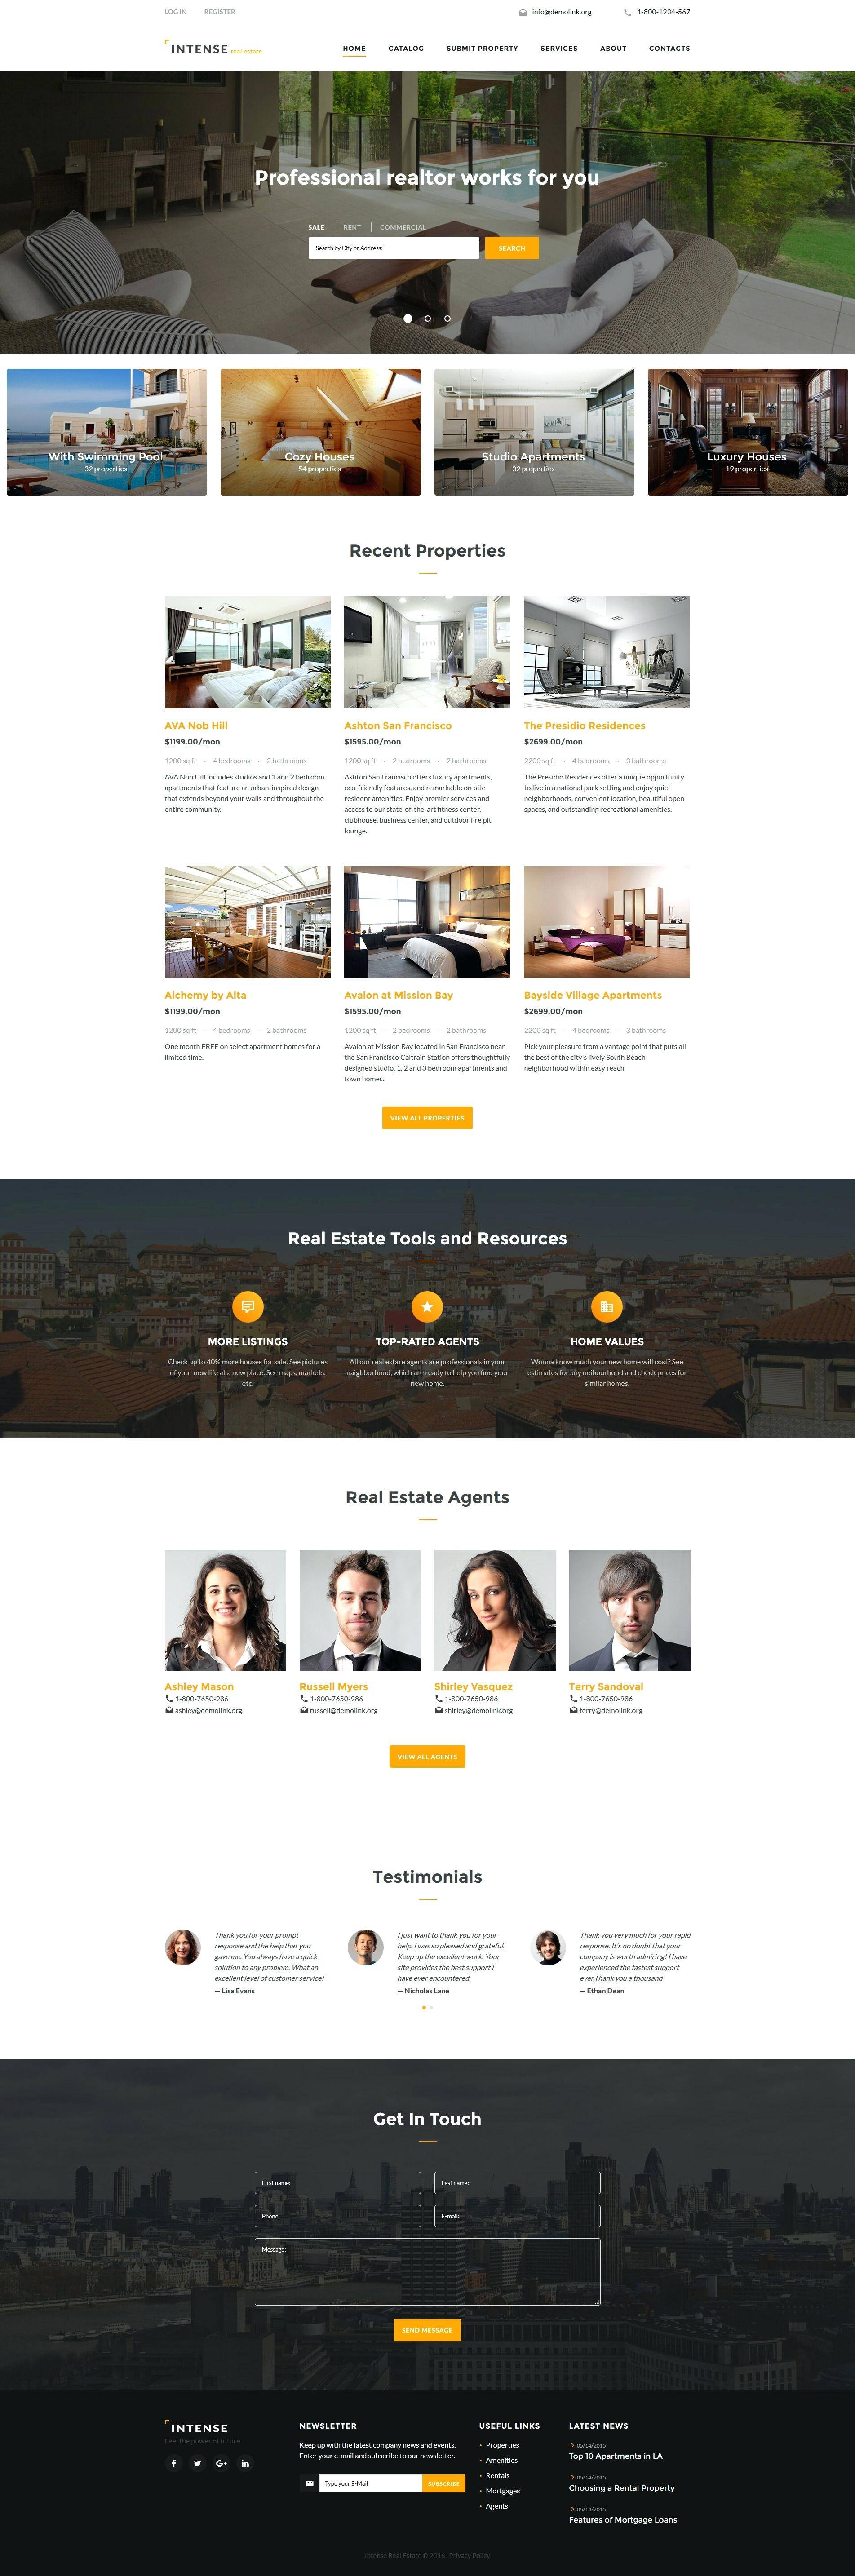 Property Broker Website Templates